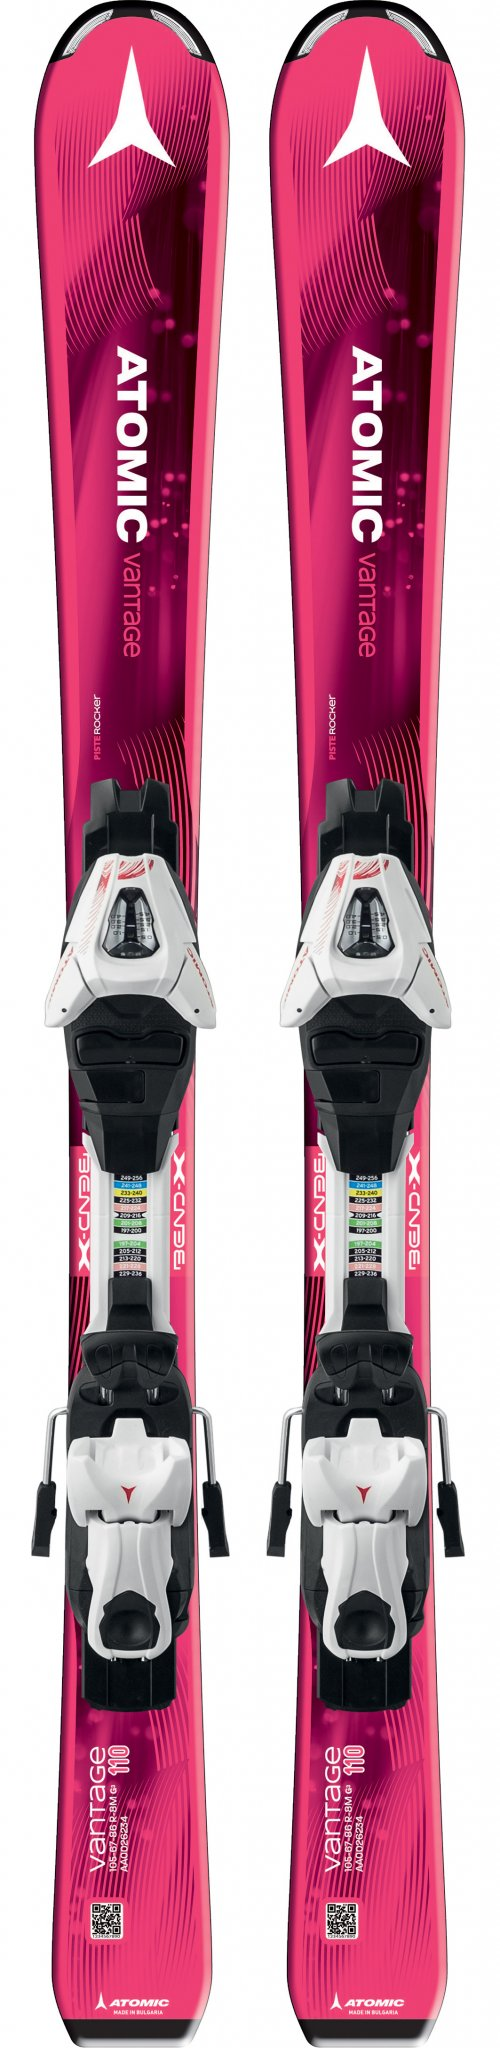 Image 0 of ATOMIC - VANTAGE GIRL II SKIS W/C5 BINDING - 2018